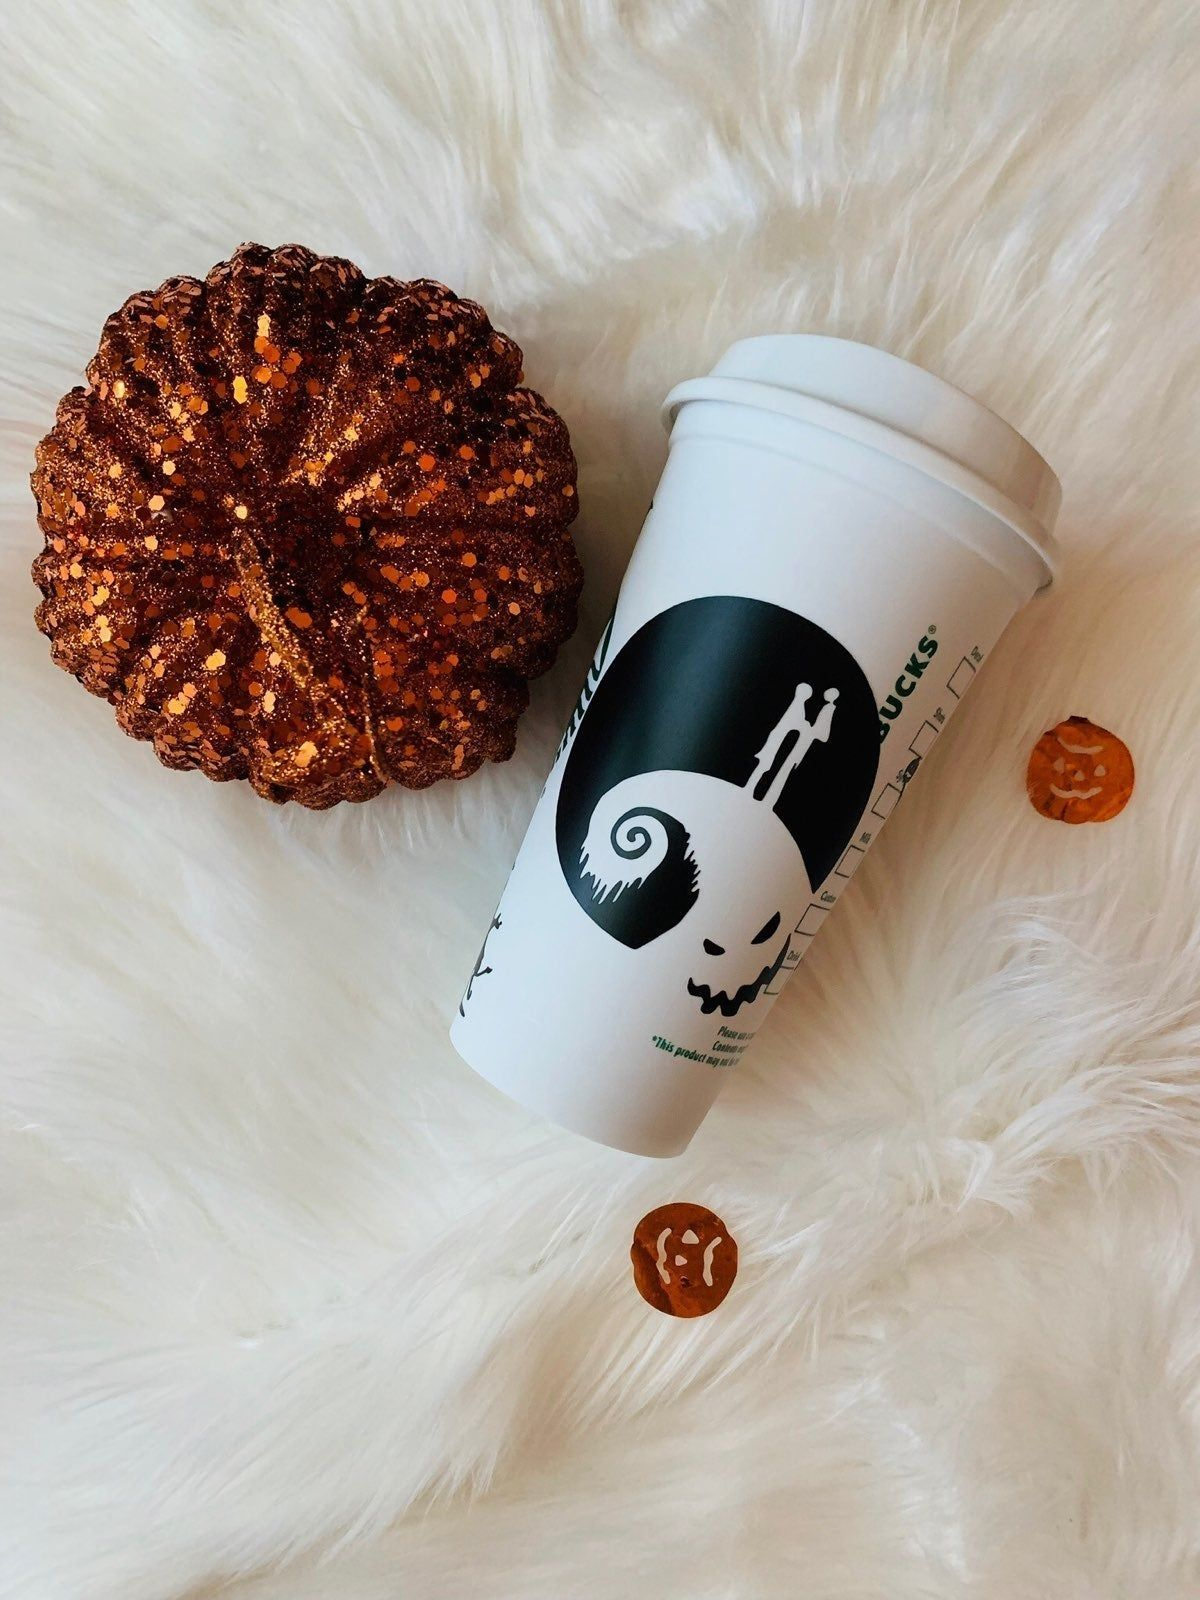 This Starbucks reusable coffee cup is perfect for your day